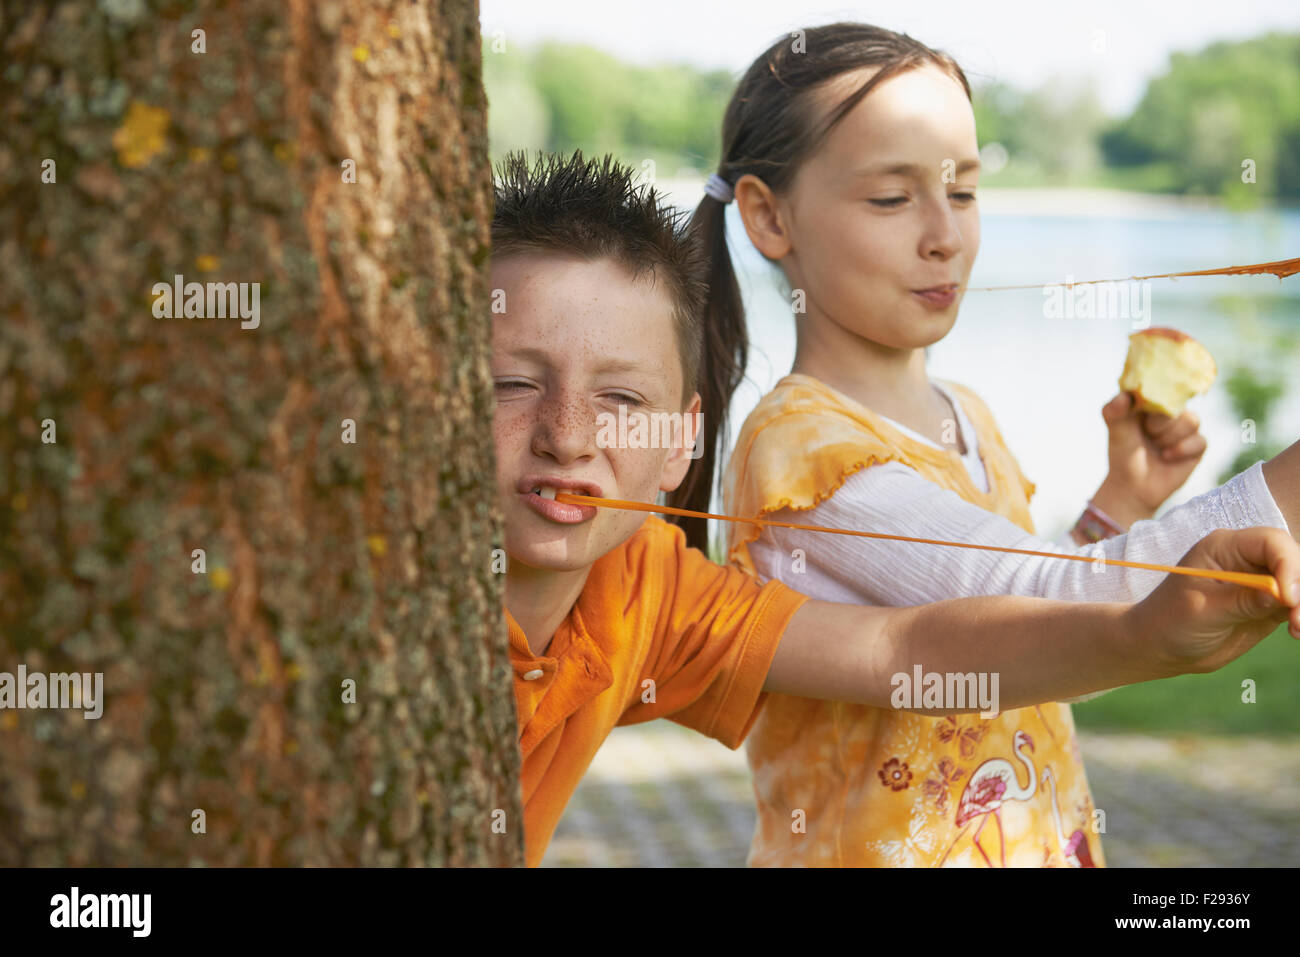 Children playing with bubble gums, Bavaria, Germany - Stock Image